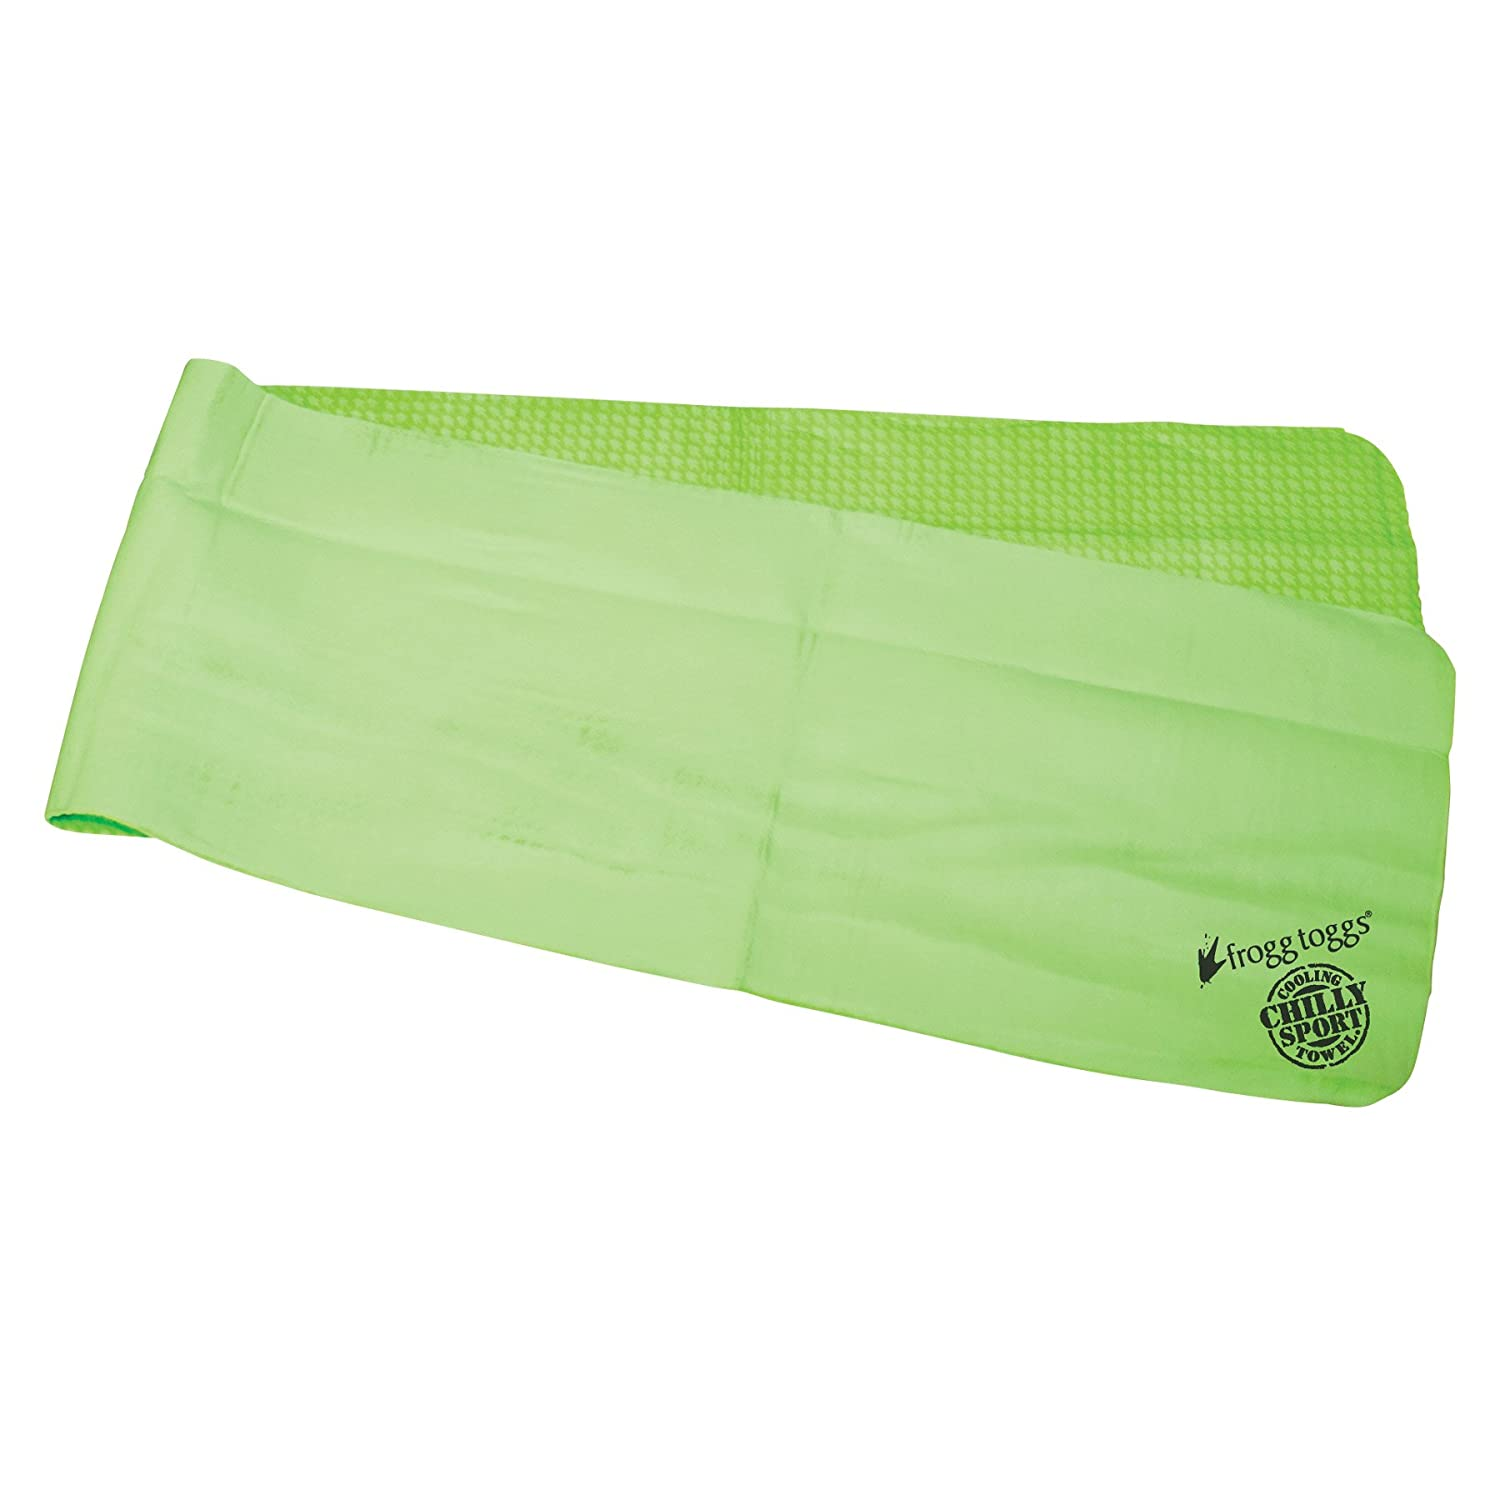 """Frogg Toggs 647484036332 Chilly Sport Cooling Towel, 33"""" Length x 6-1/2"""" Width, Lime Green"""